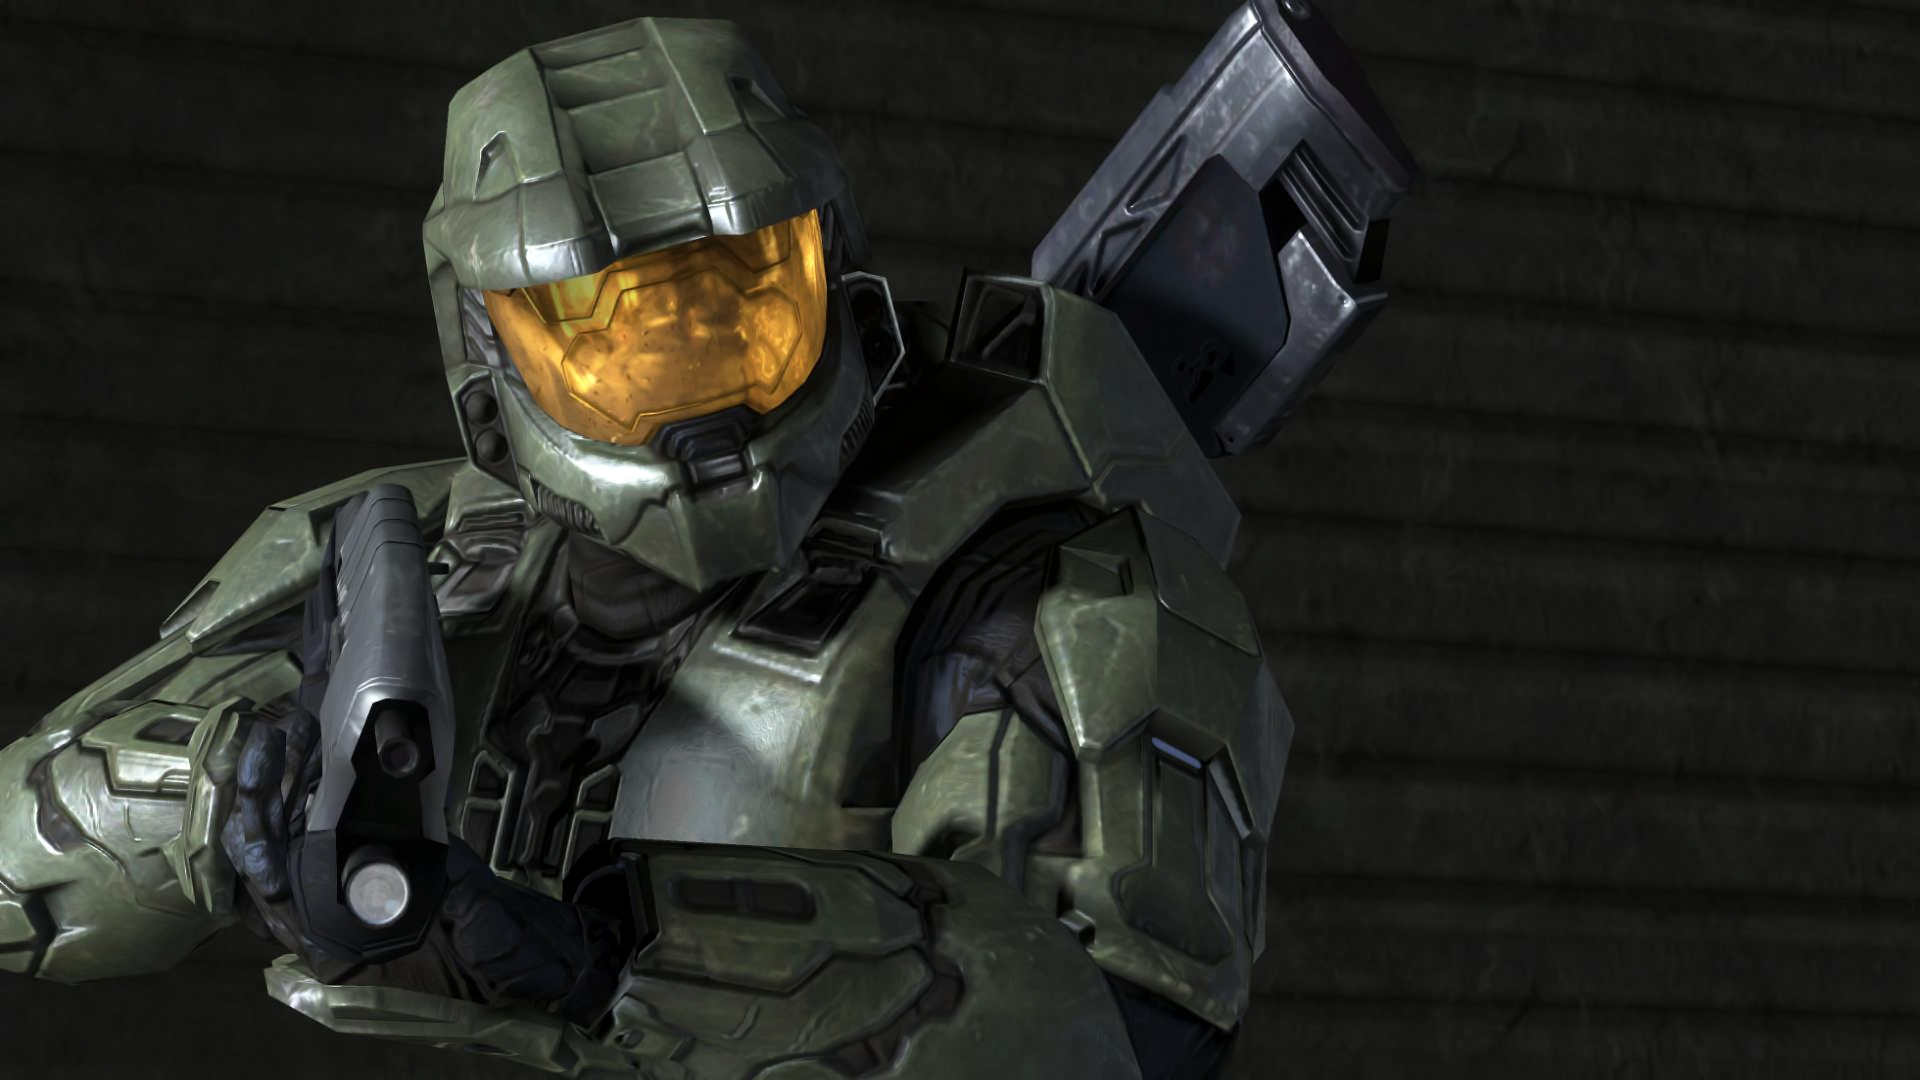 Free Download Halo 3 Crows Nest 11 Master Chief Wallpaper 1080p